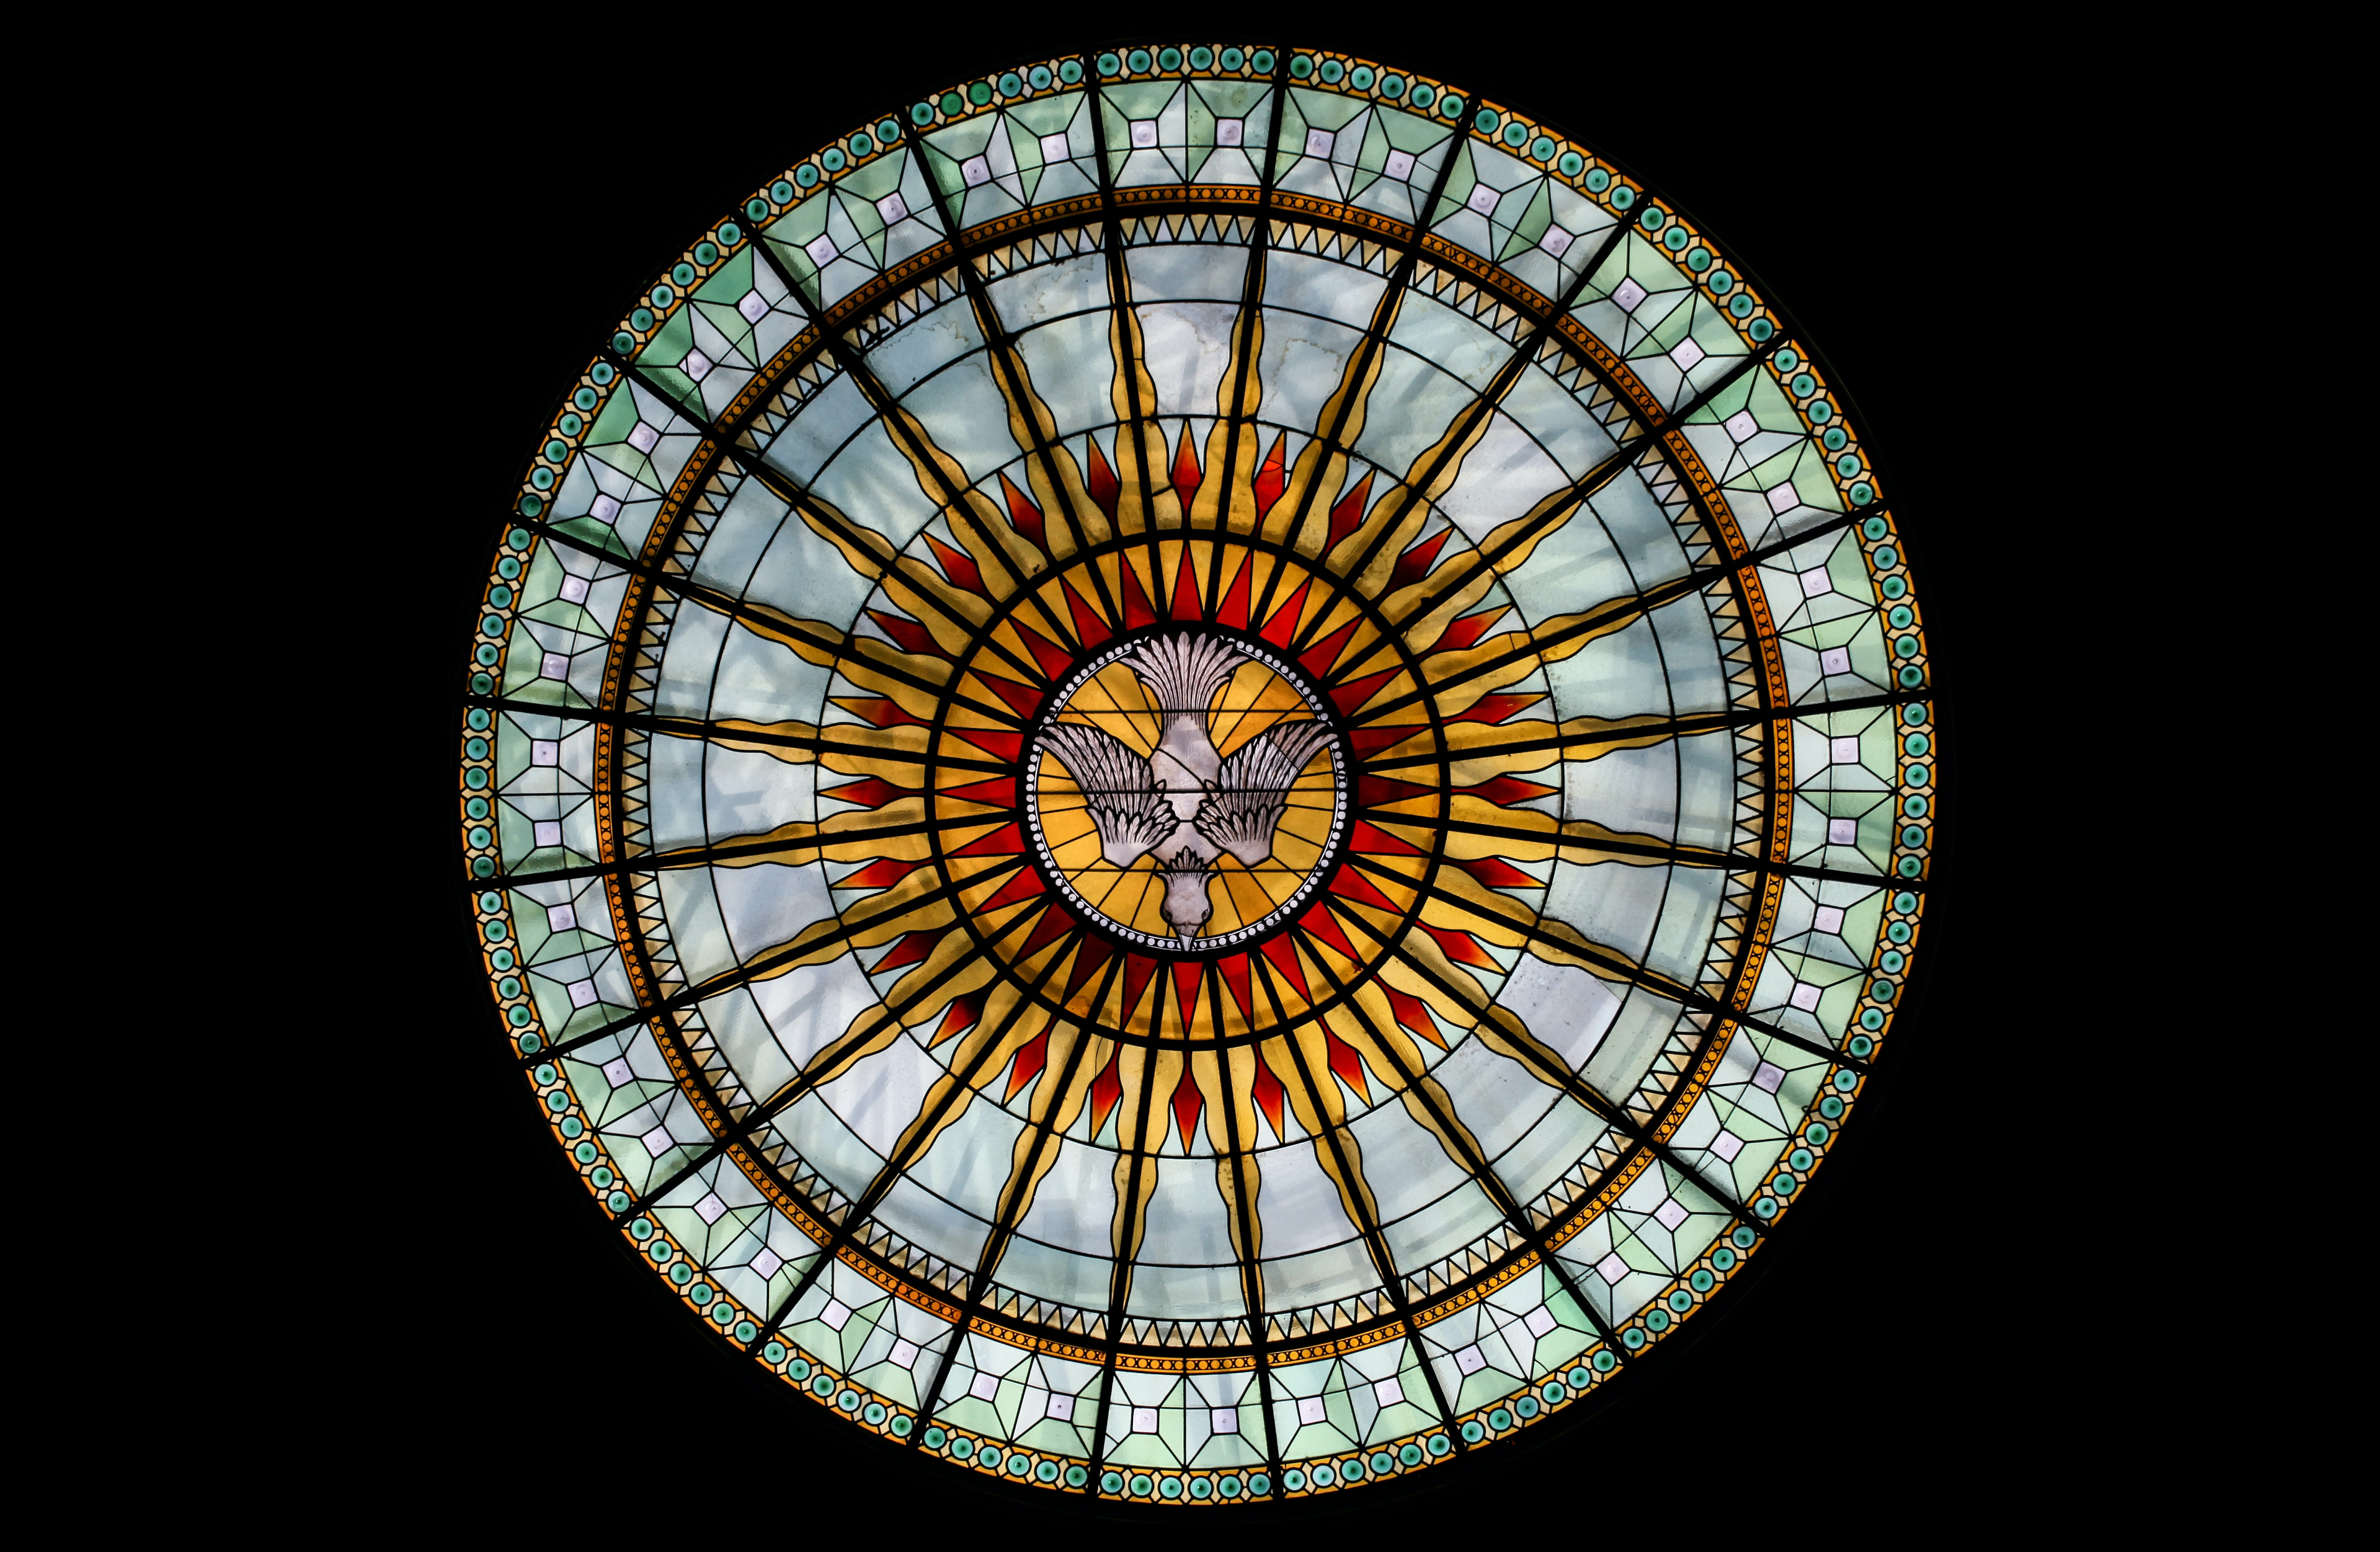 round white, beige, and red stained glass roofing